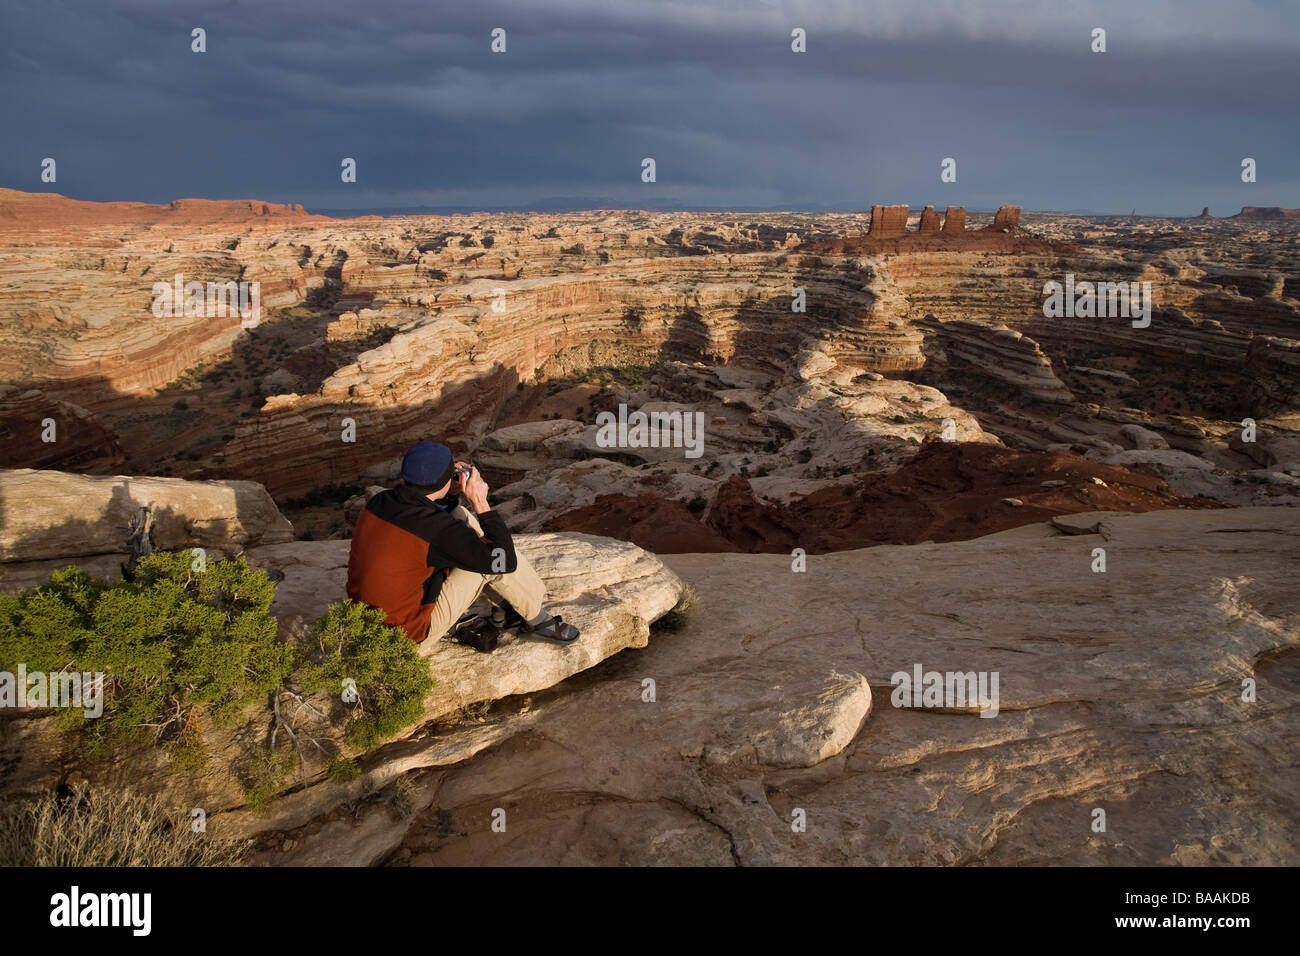 Man looking out with binoculars into the Maze section from edge of cliff in Canyonlands National Park, Utah. - Stock Image